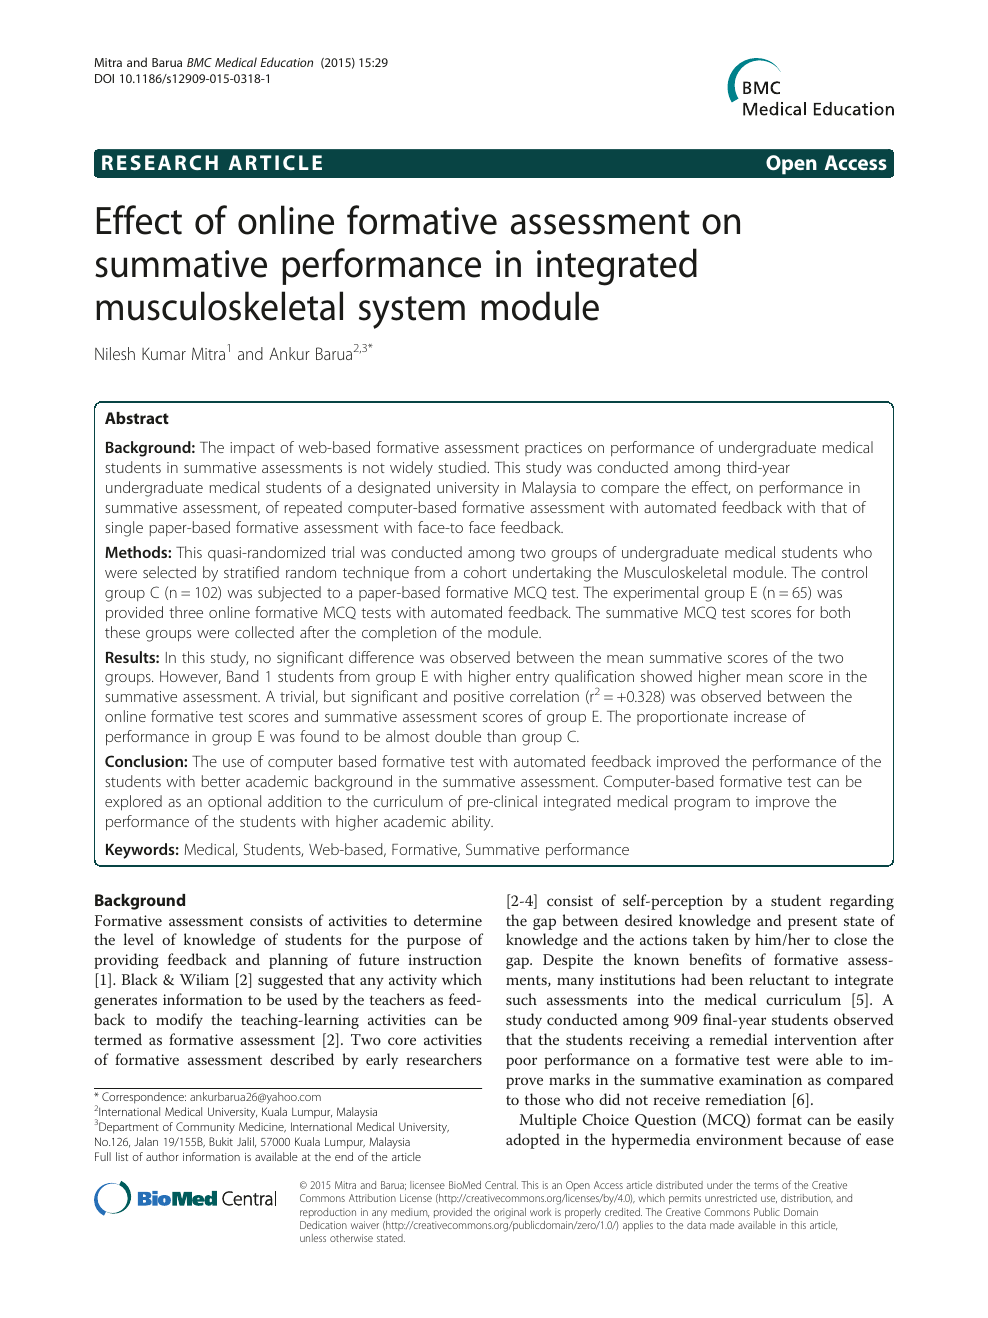 Effect of online formative assessment on summative